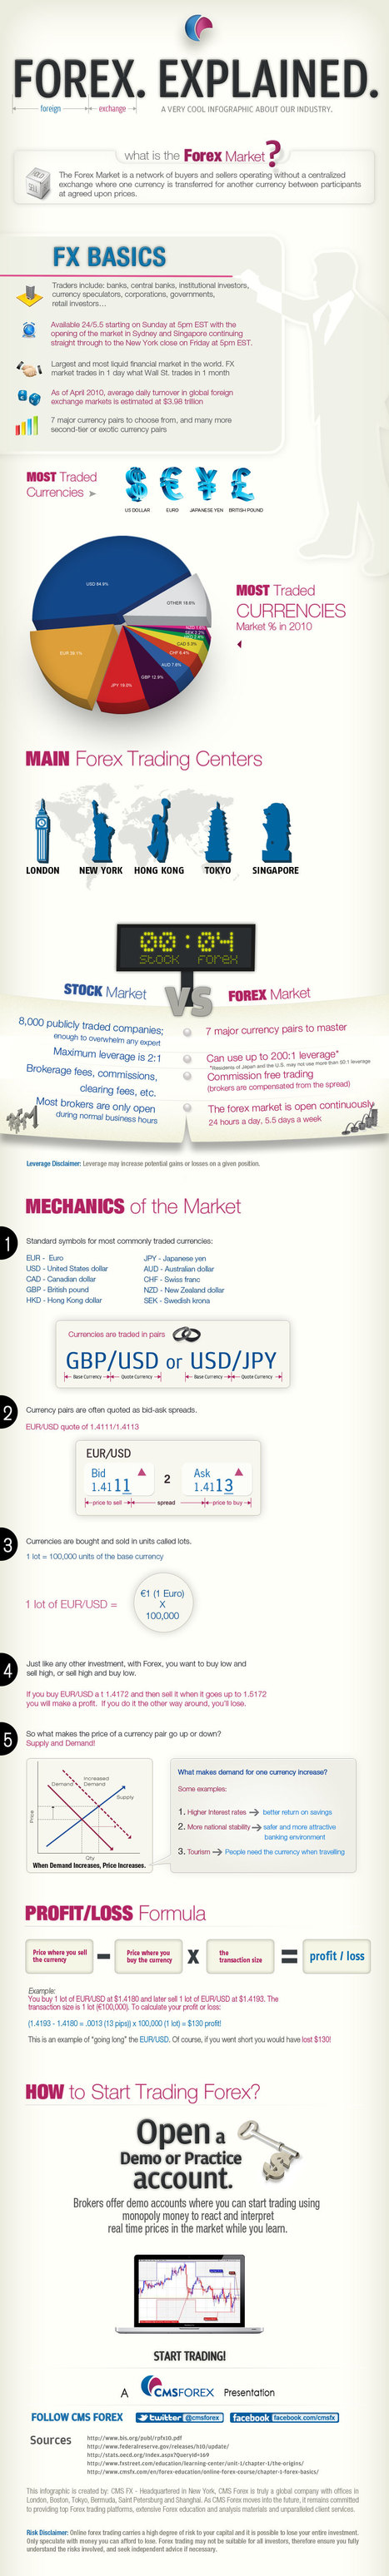 The Forex Market Explained [infographic] | Social Mercor | Scoop.it